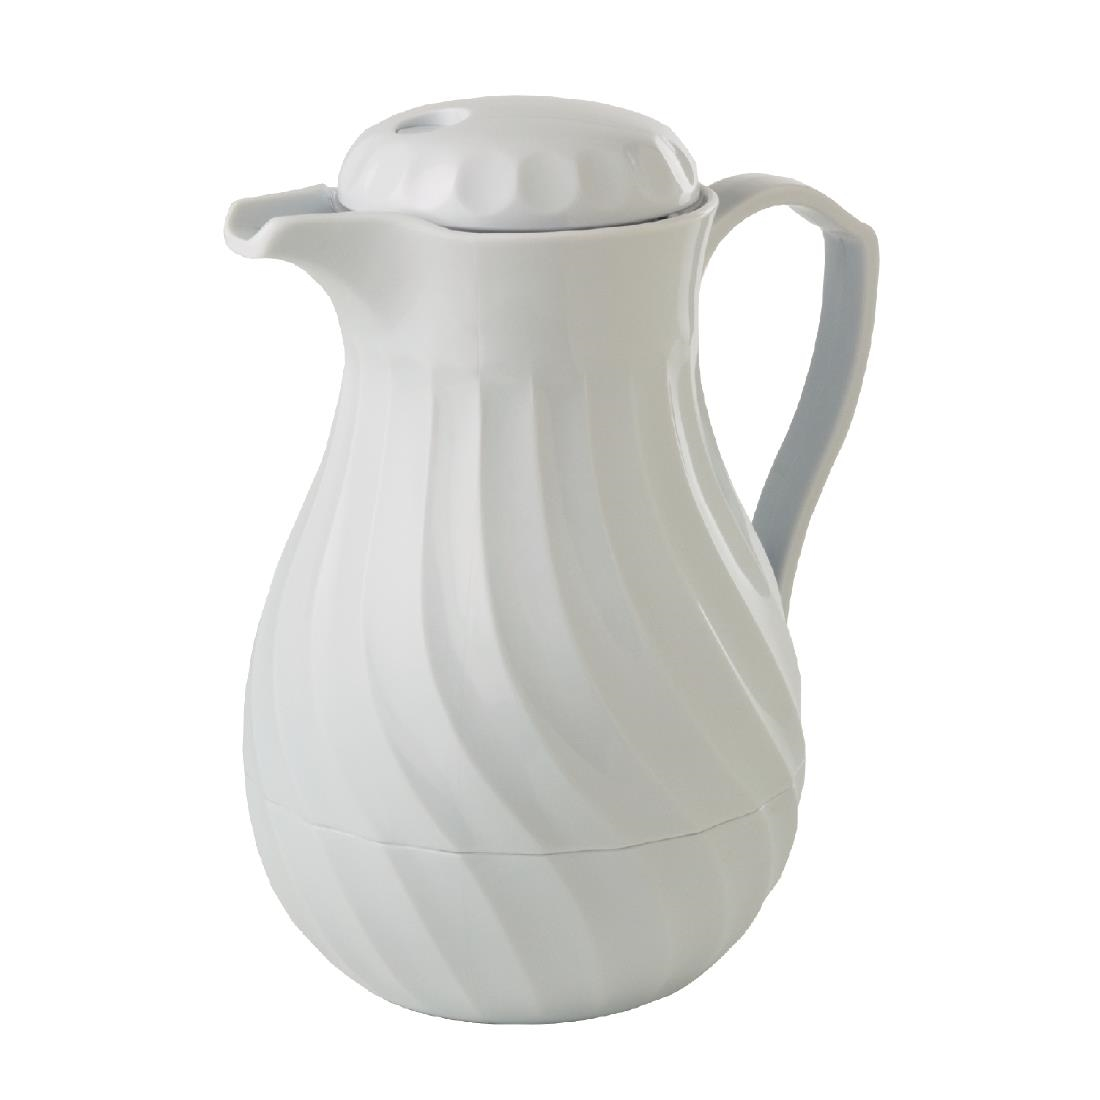 Image of Kinox Insulated Coffee Jug White 1.1Ltr